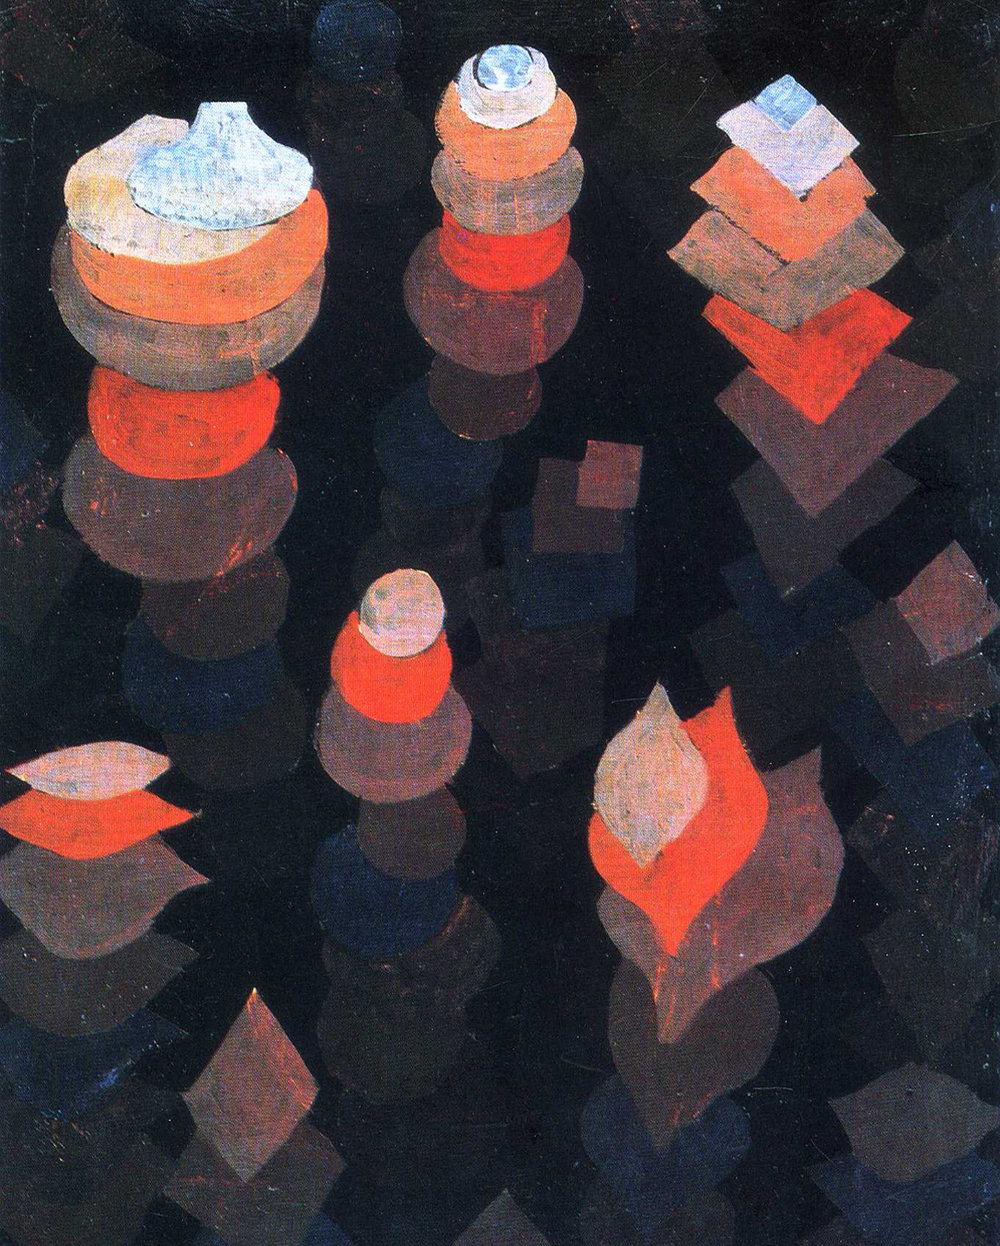 18 -  'Growth Of The Night Plants'  (1922), Paul klee